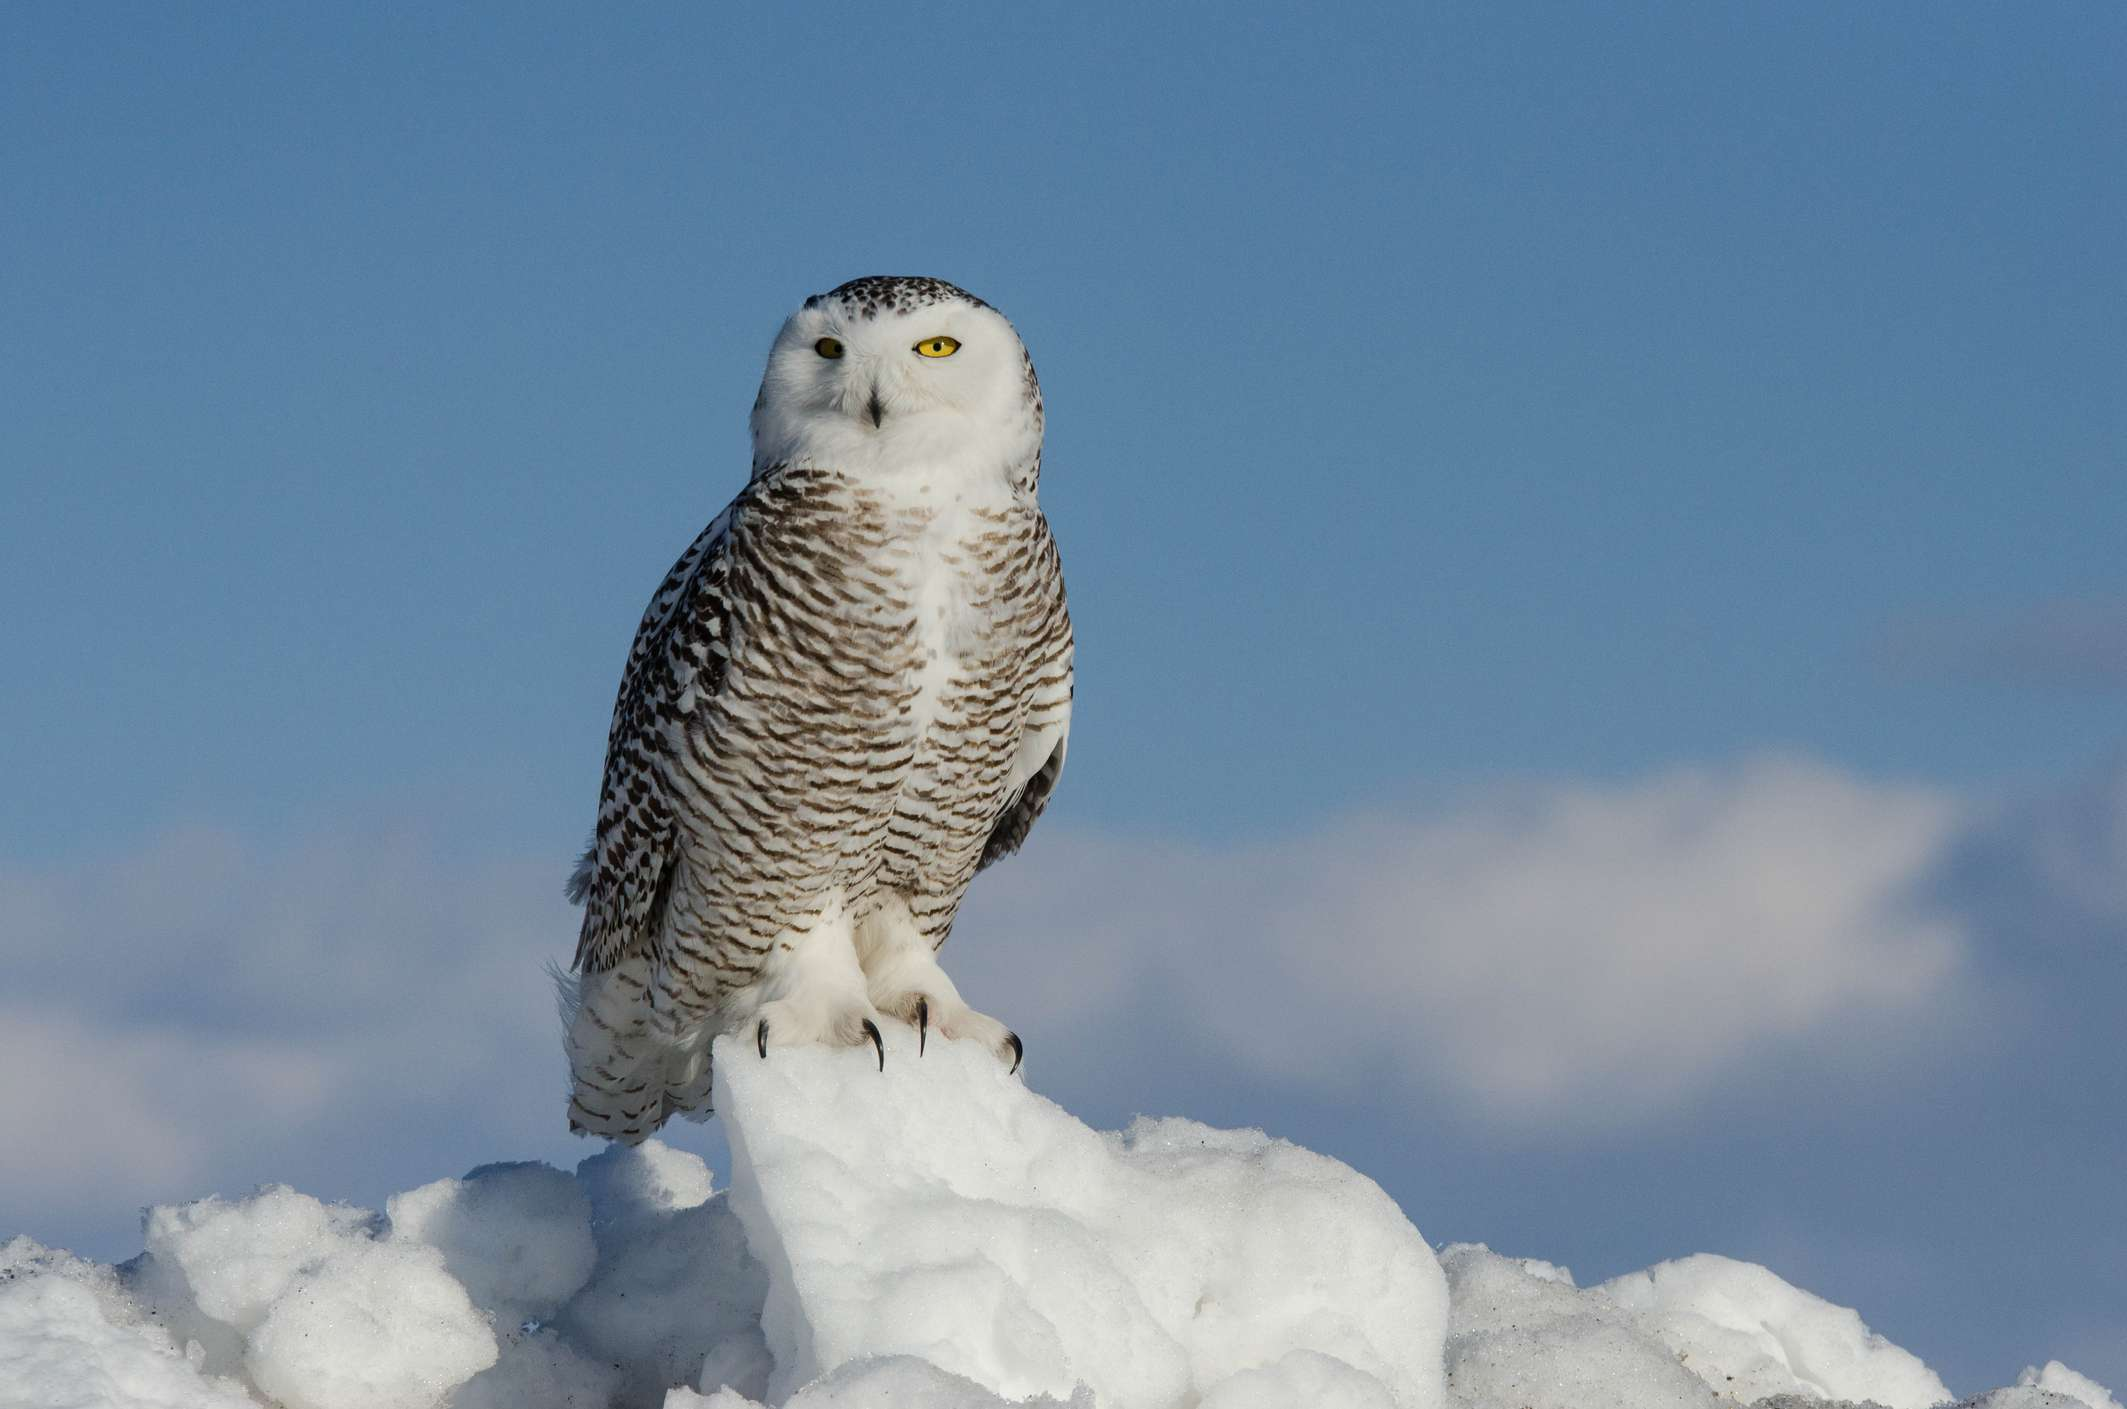 Snowy owl perched on a pile of snow